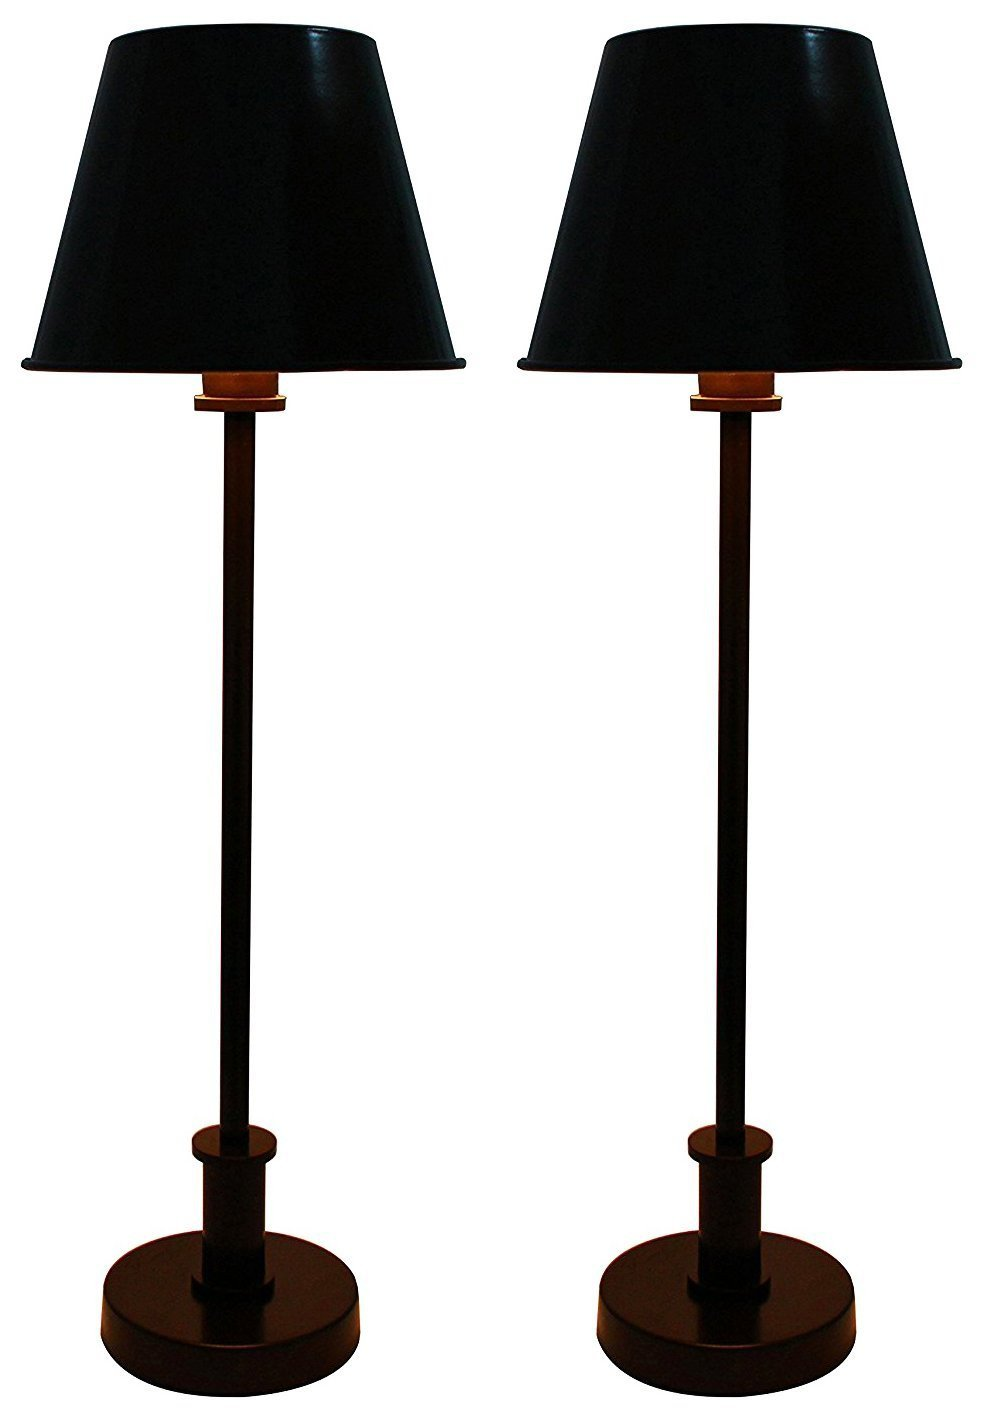 Set of 2 Eaton Buffet Lamps with Shades